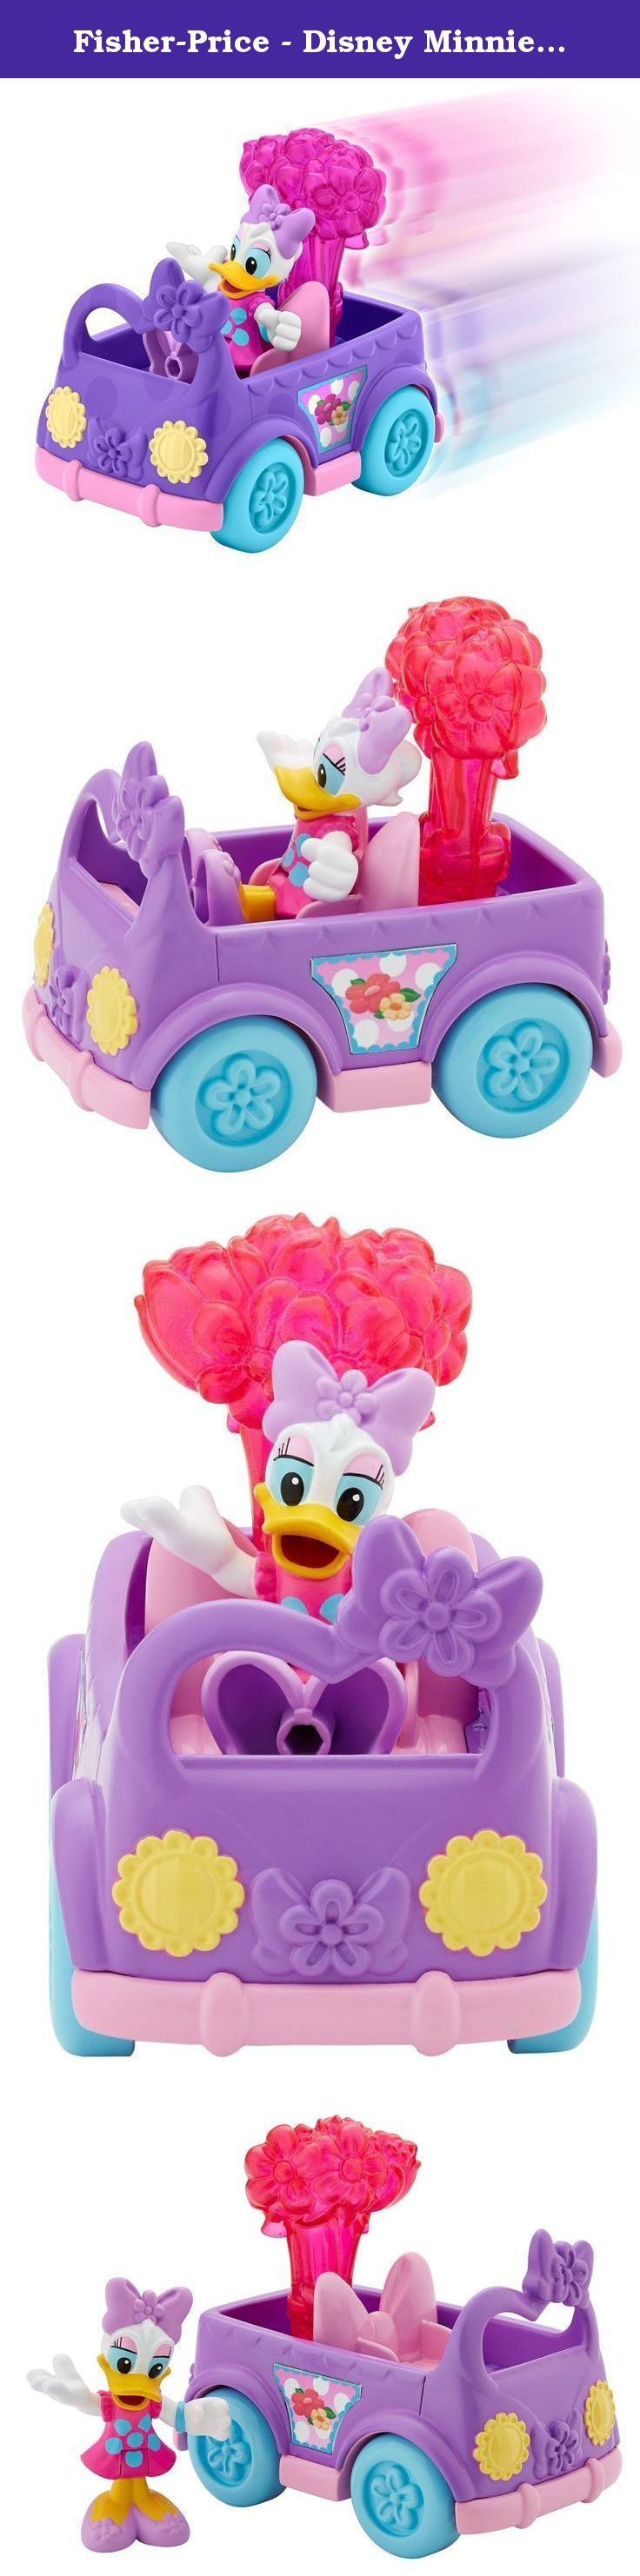 Fisher-Price - Disney Minnie Mouse - Darling Delivery Daisy. Time for Disney's Daisy duck to make all of her special deliveries! darling delivery Daisy is on her way to spruce up a party with a car full of flowers. Darling delivery Daisy comes with a flower power inspired vehicle and flower accessory. Bring daisy's friend Minnie along so she can decorate the party with her beautiful balloons! (sold separately and subject to availability).